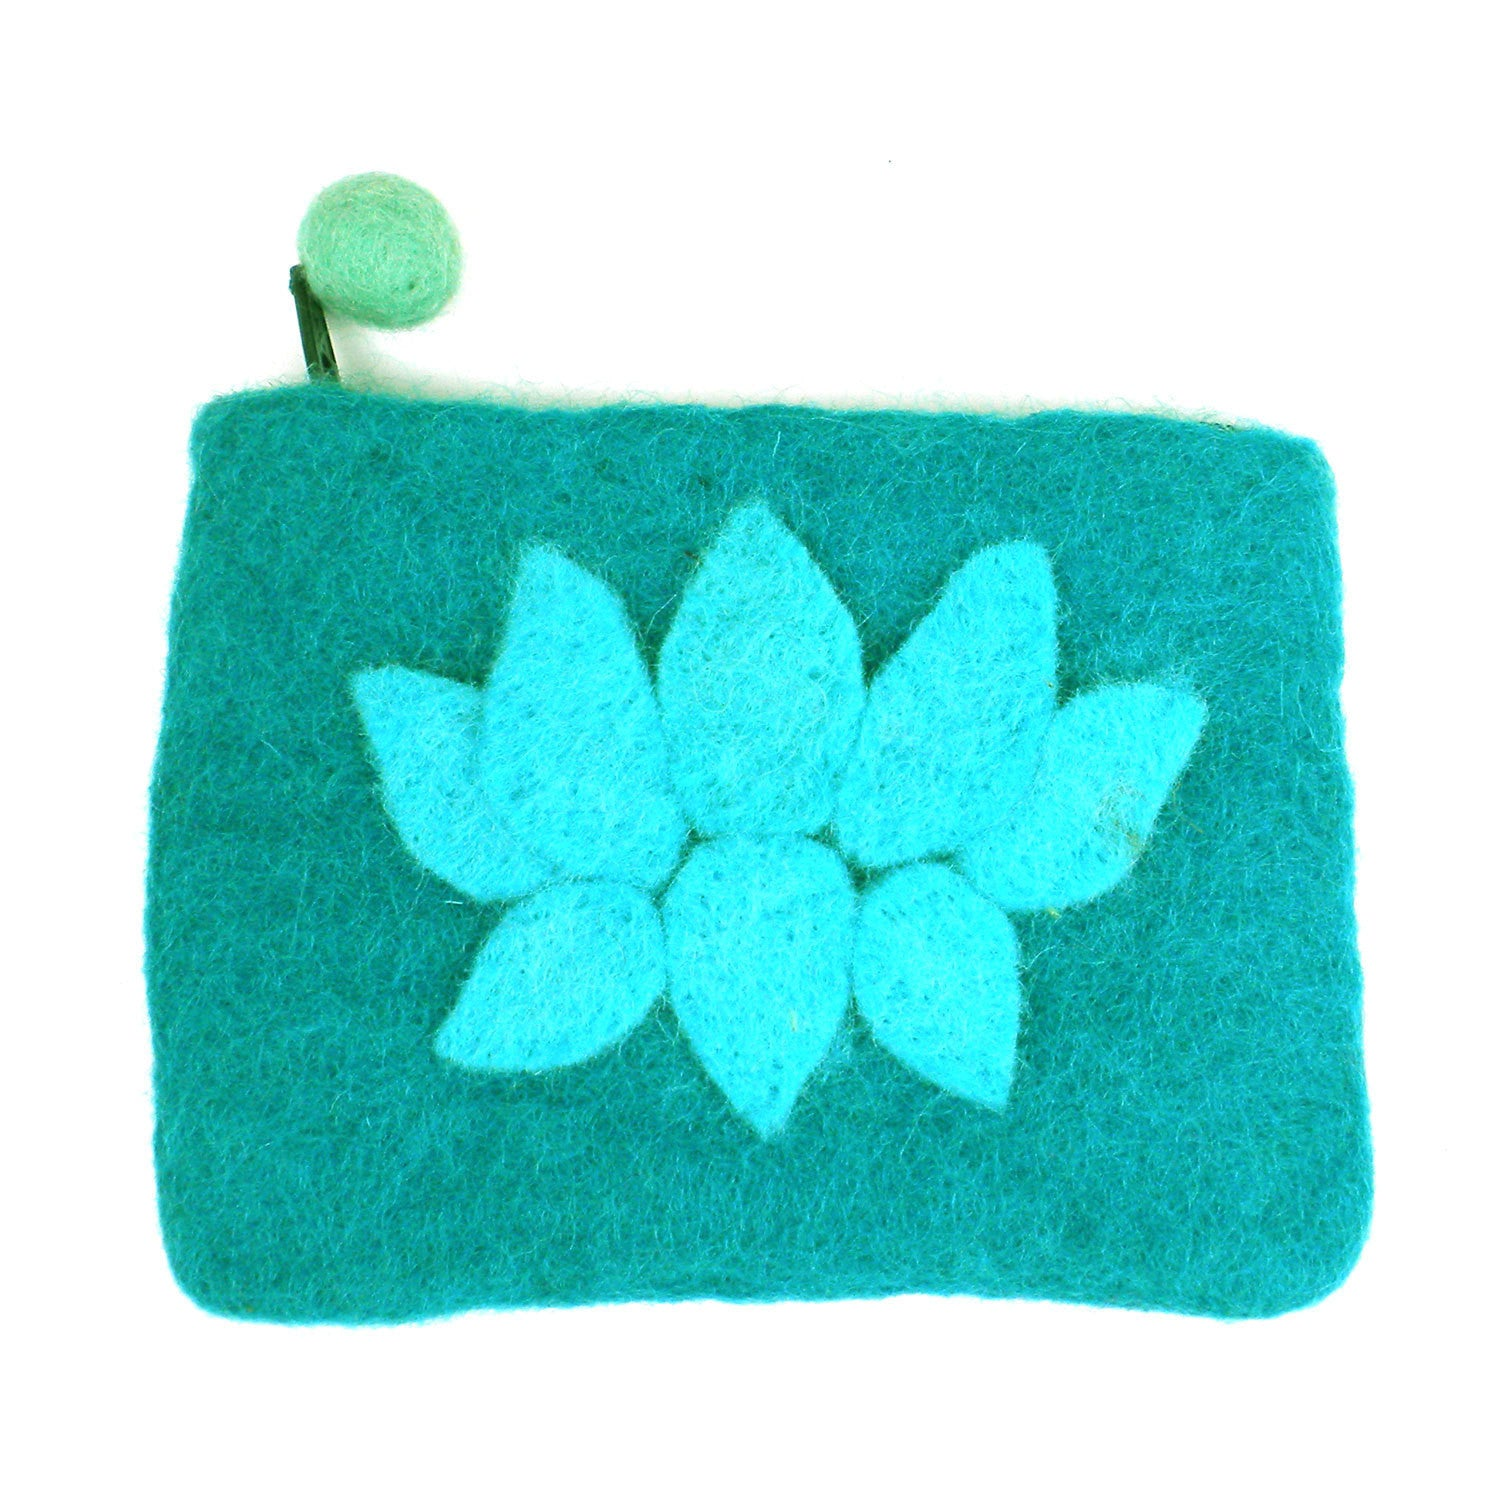 Lotus Flower Felt Coin Purse - Turquoise - Global Groove